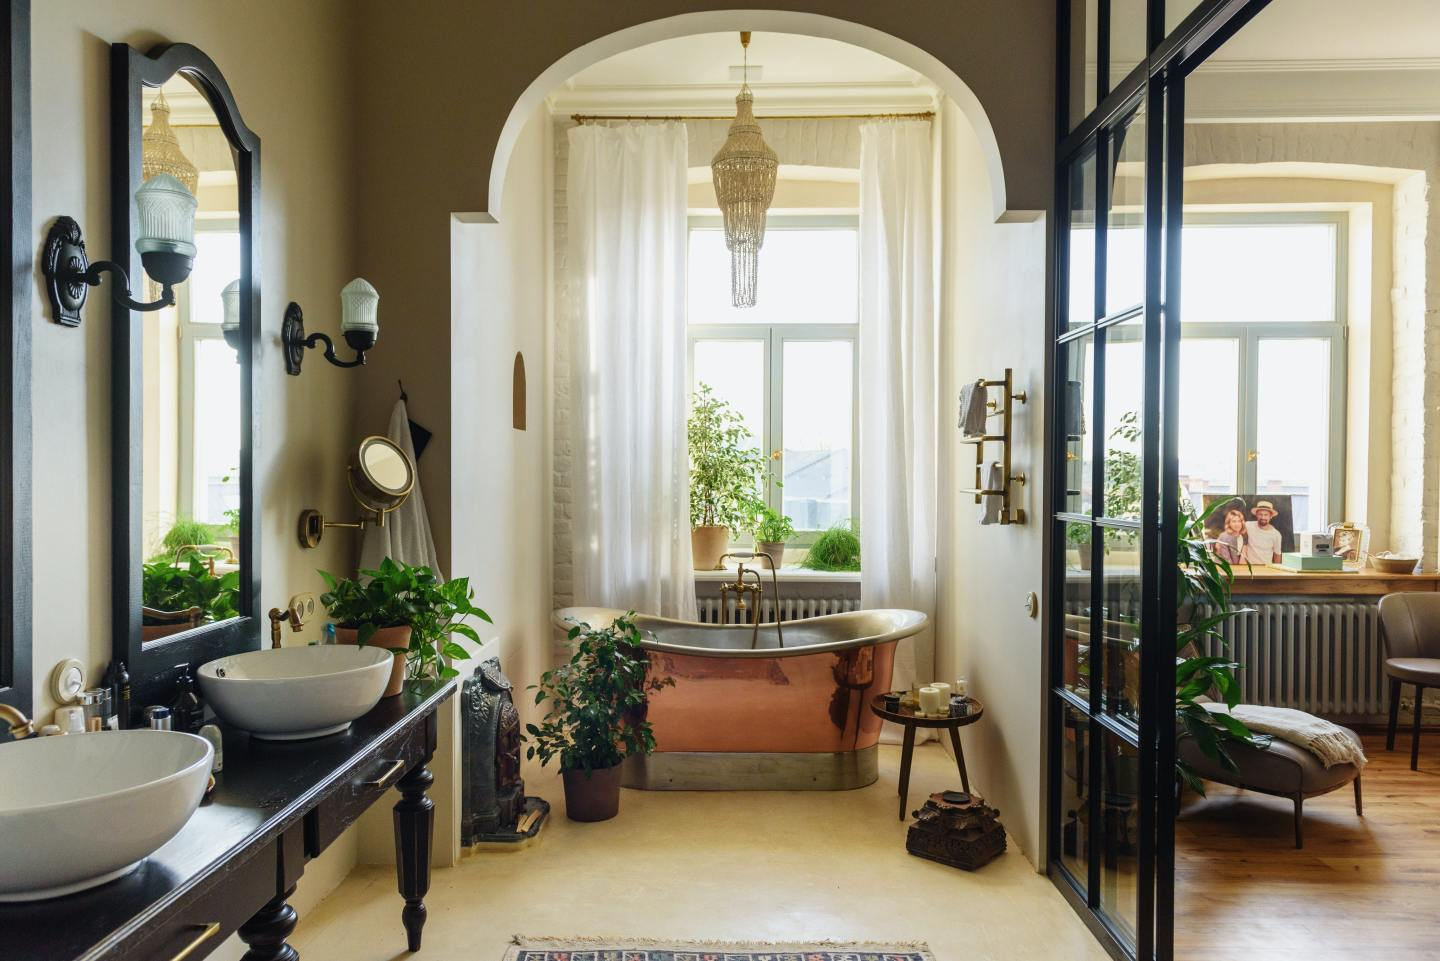 Why Your Bathroom Should Be Top Of Your Home Renovation List